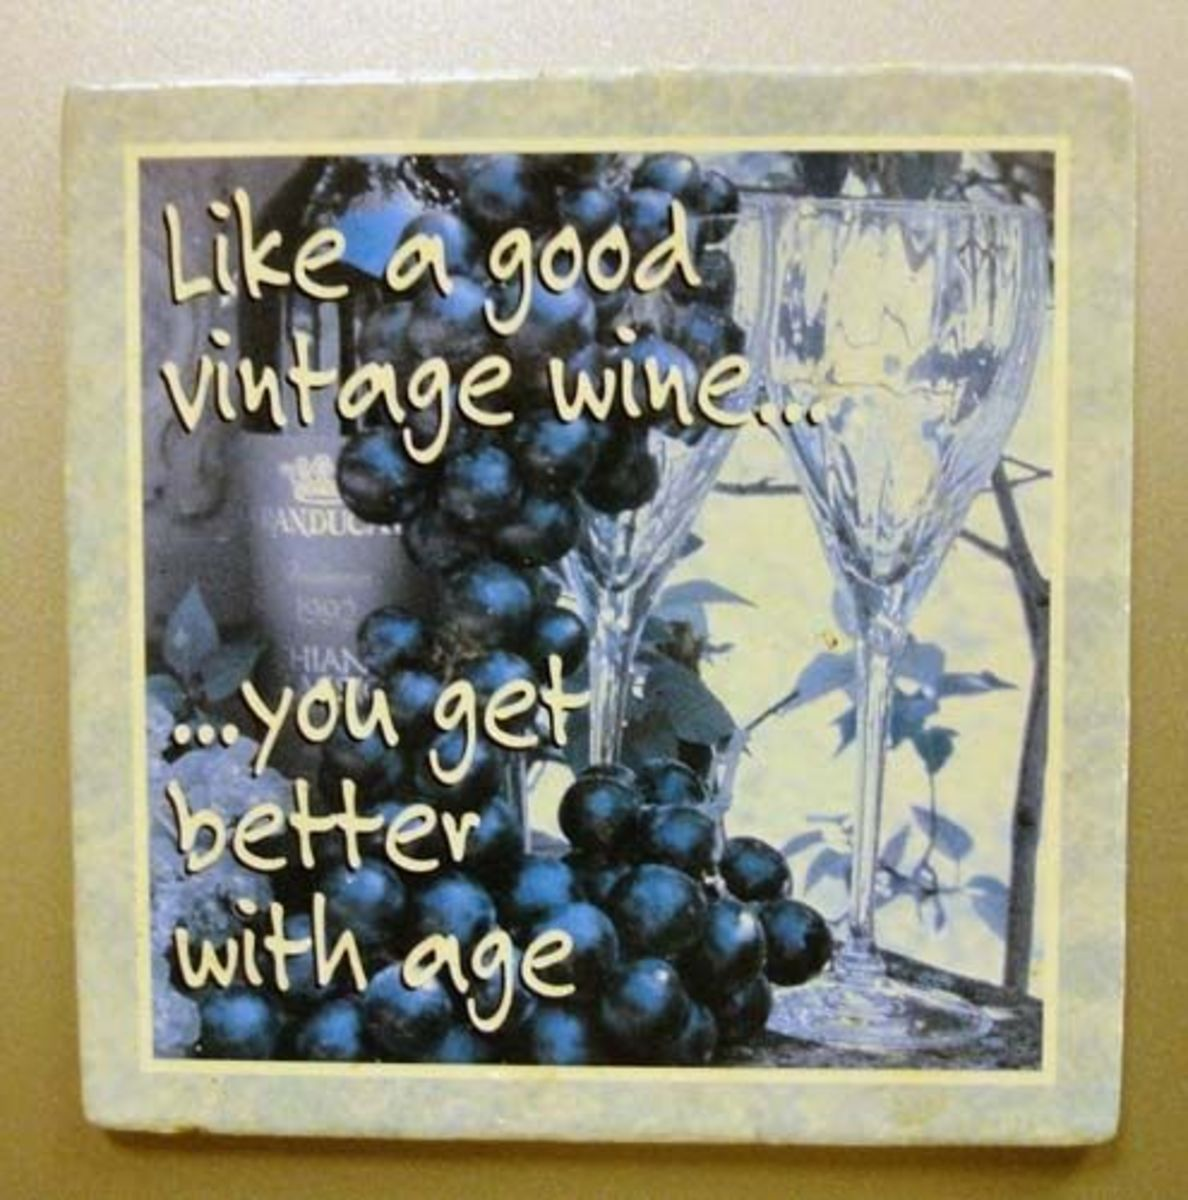 Like a good vintage wine.